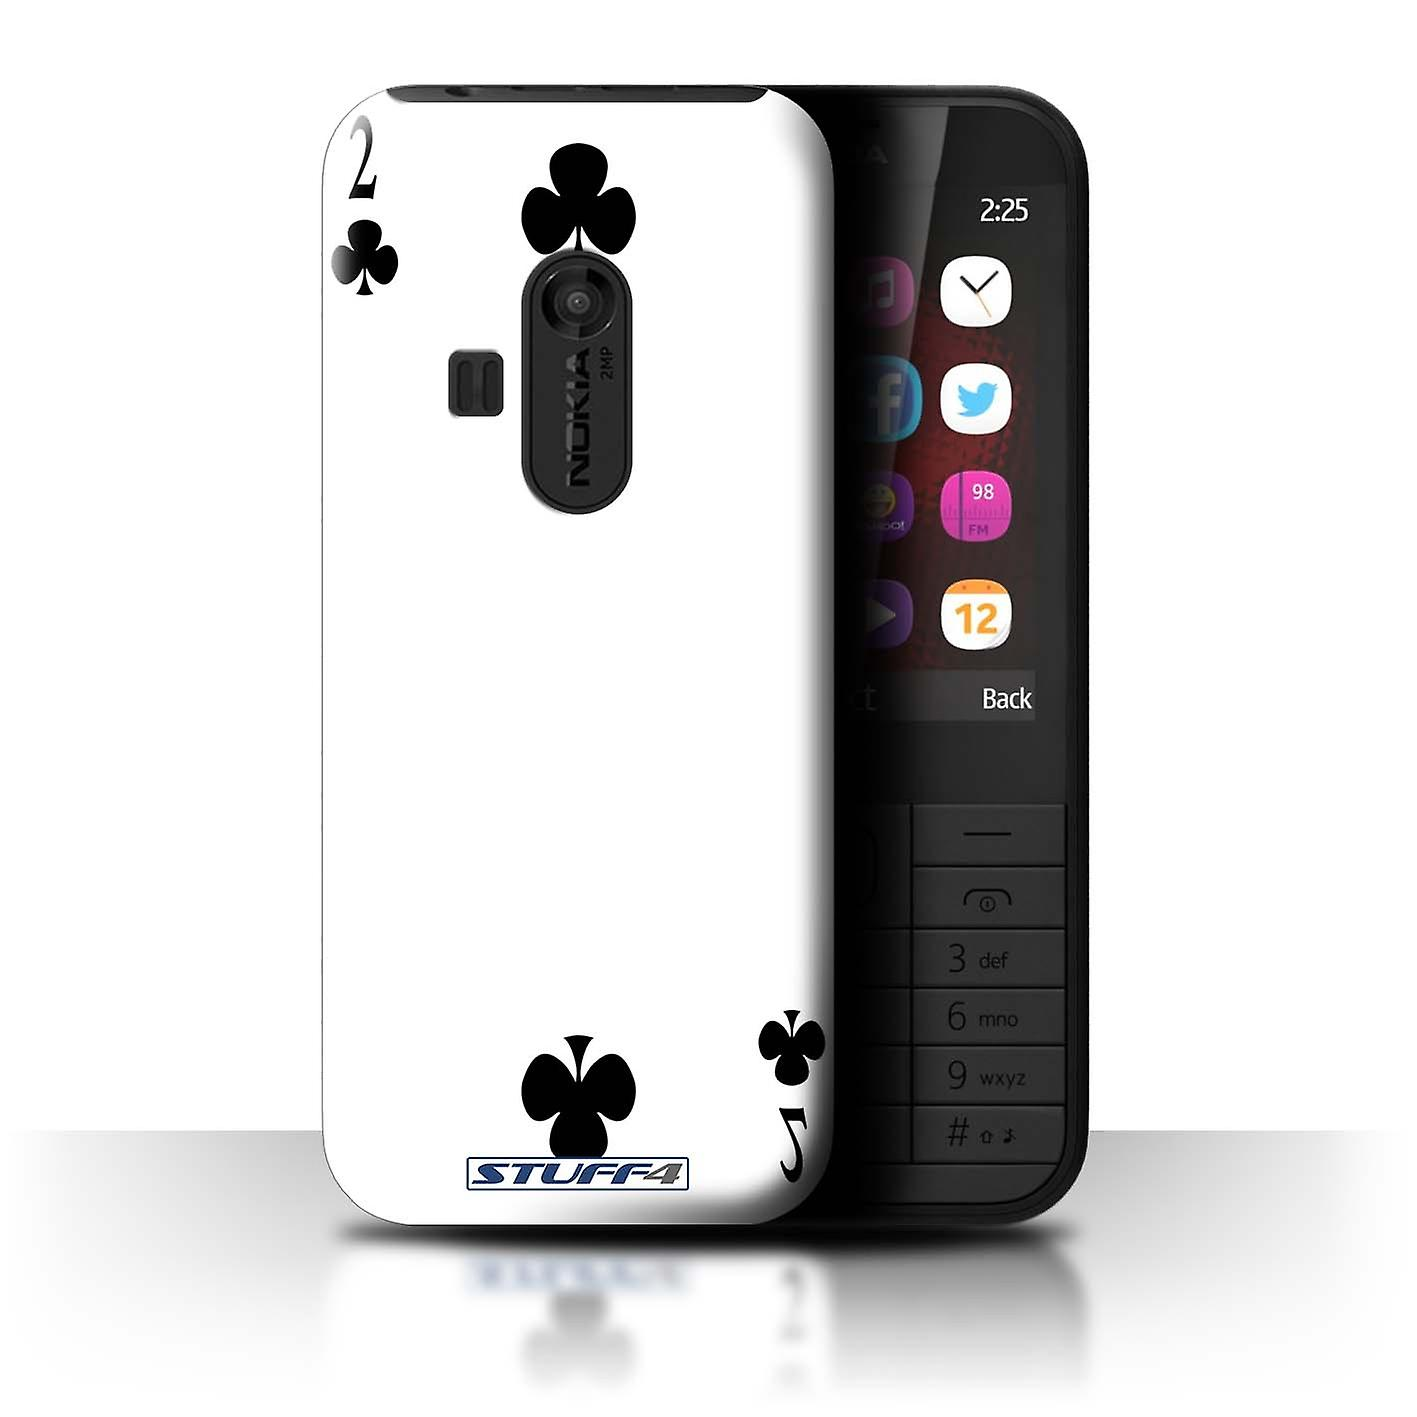 100% authentic 9deaa c4206 STUFF4 Case/Cover for Nokia 220/2 of Clubs/Playing Cards